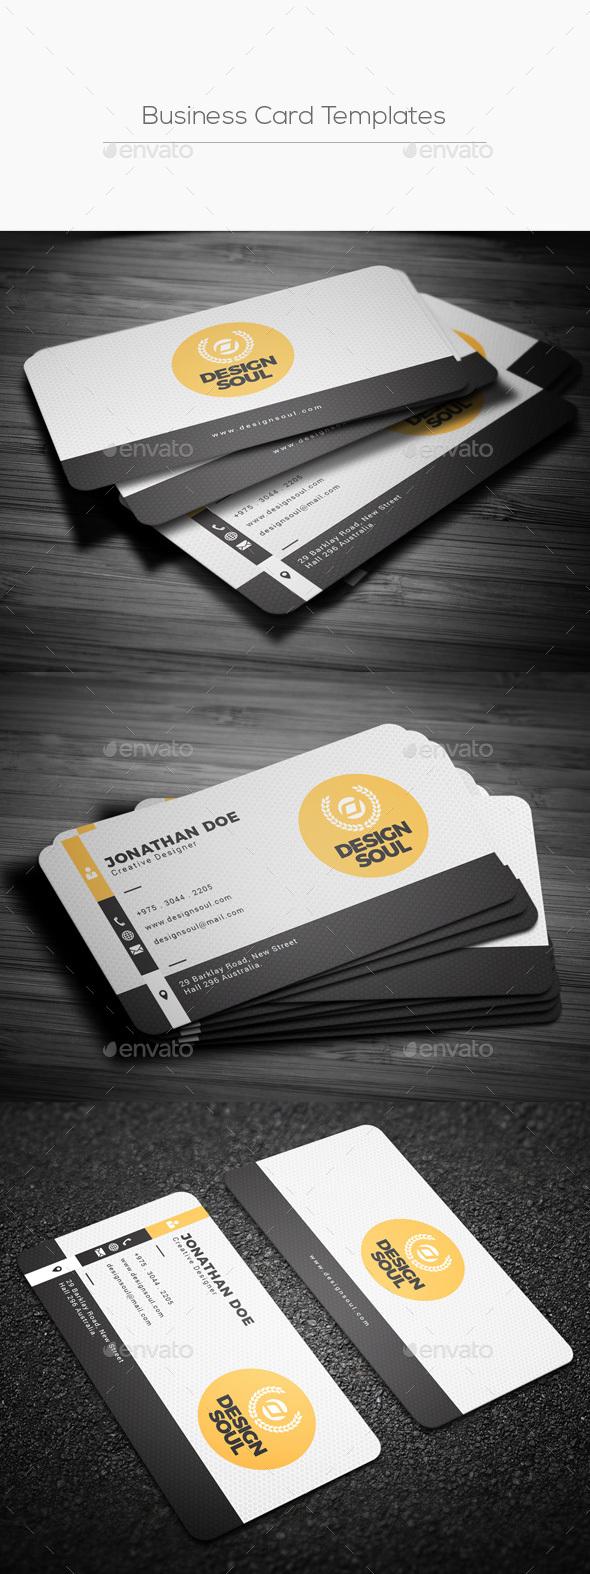 Business card templates designs from graphicriver cheaphphosting Image collections